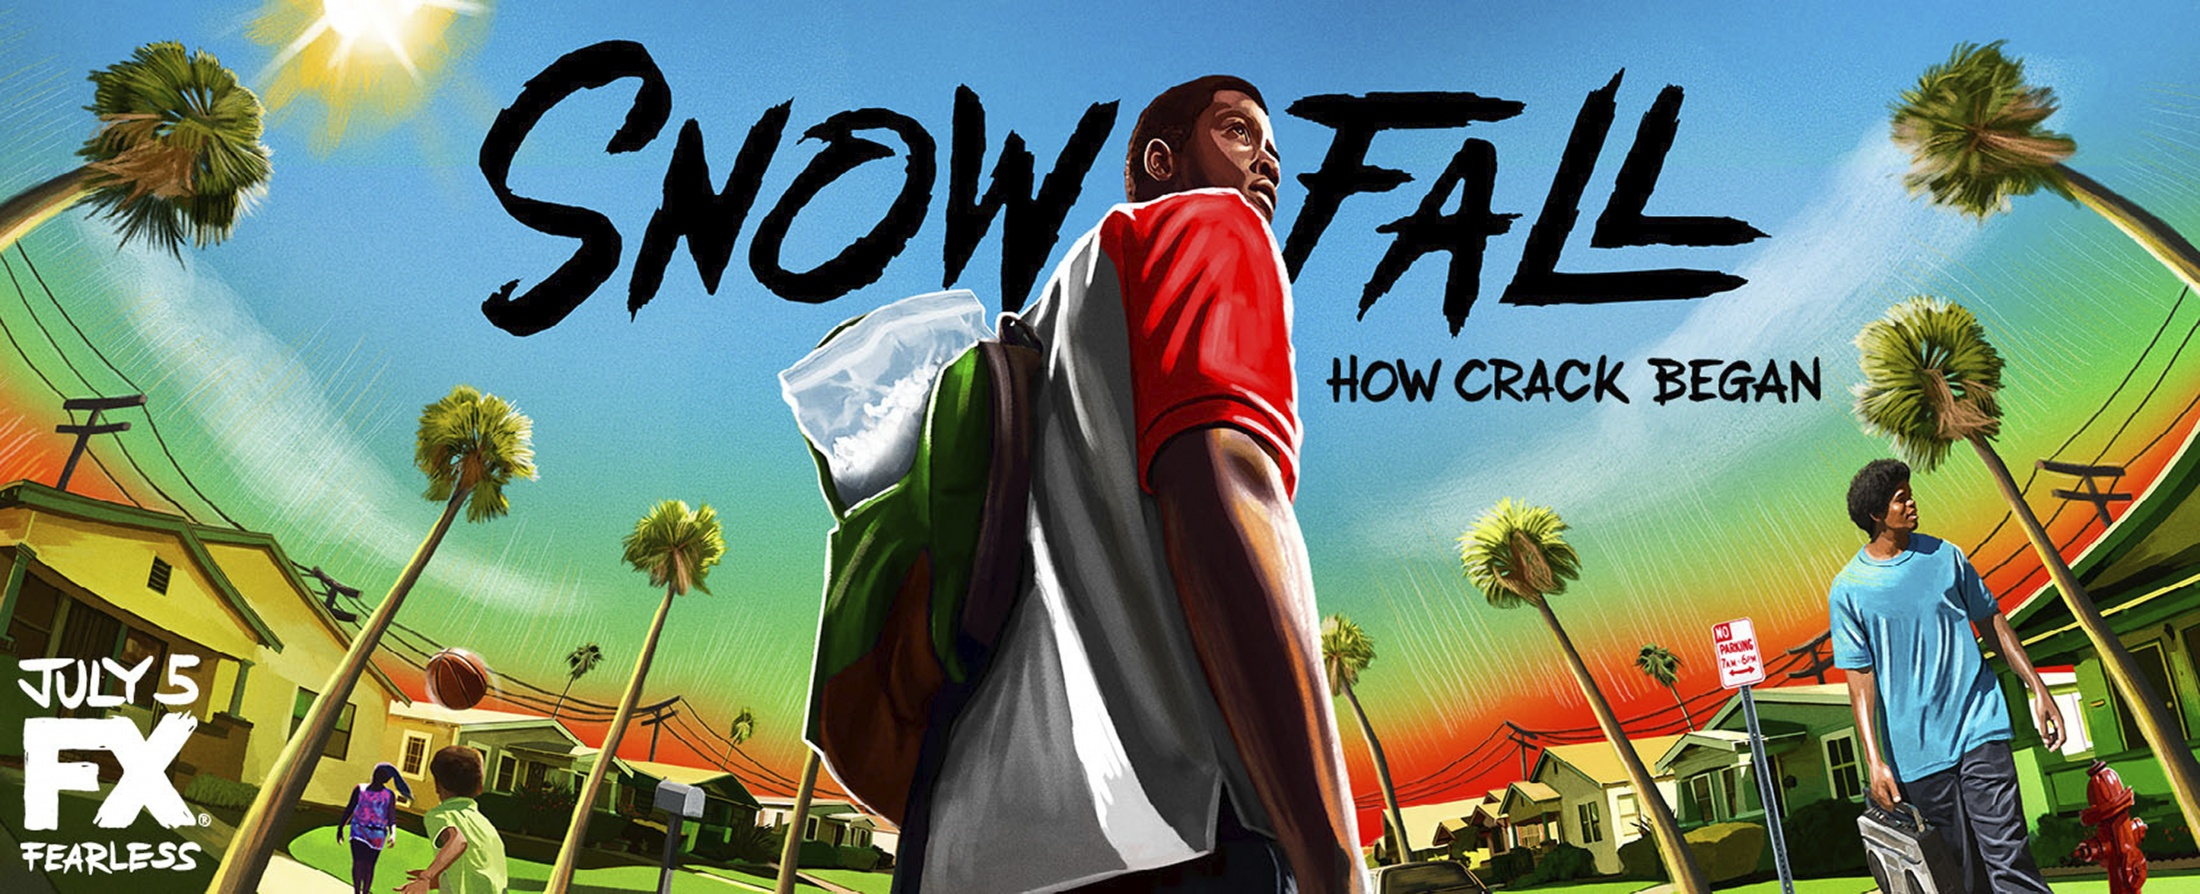 Thumbnail for Snowfall billboard (Franklin)